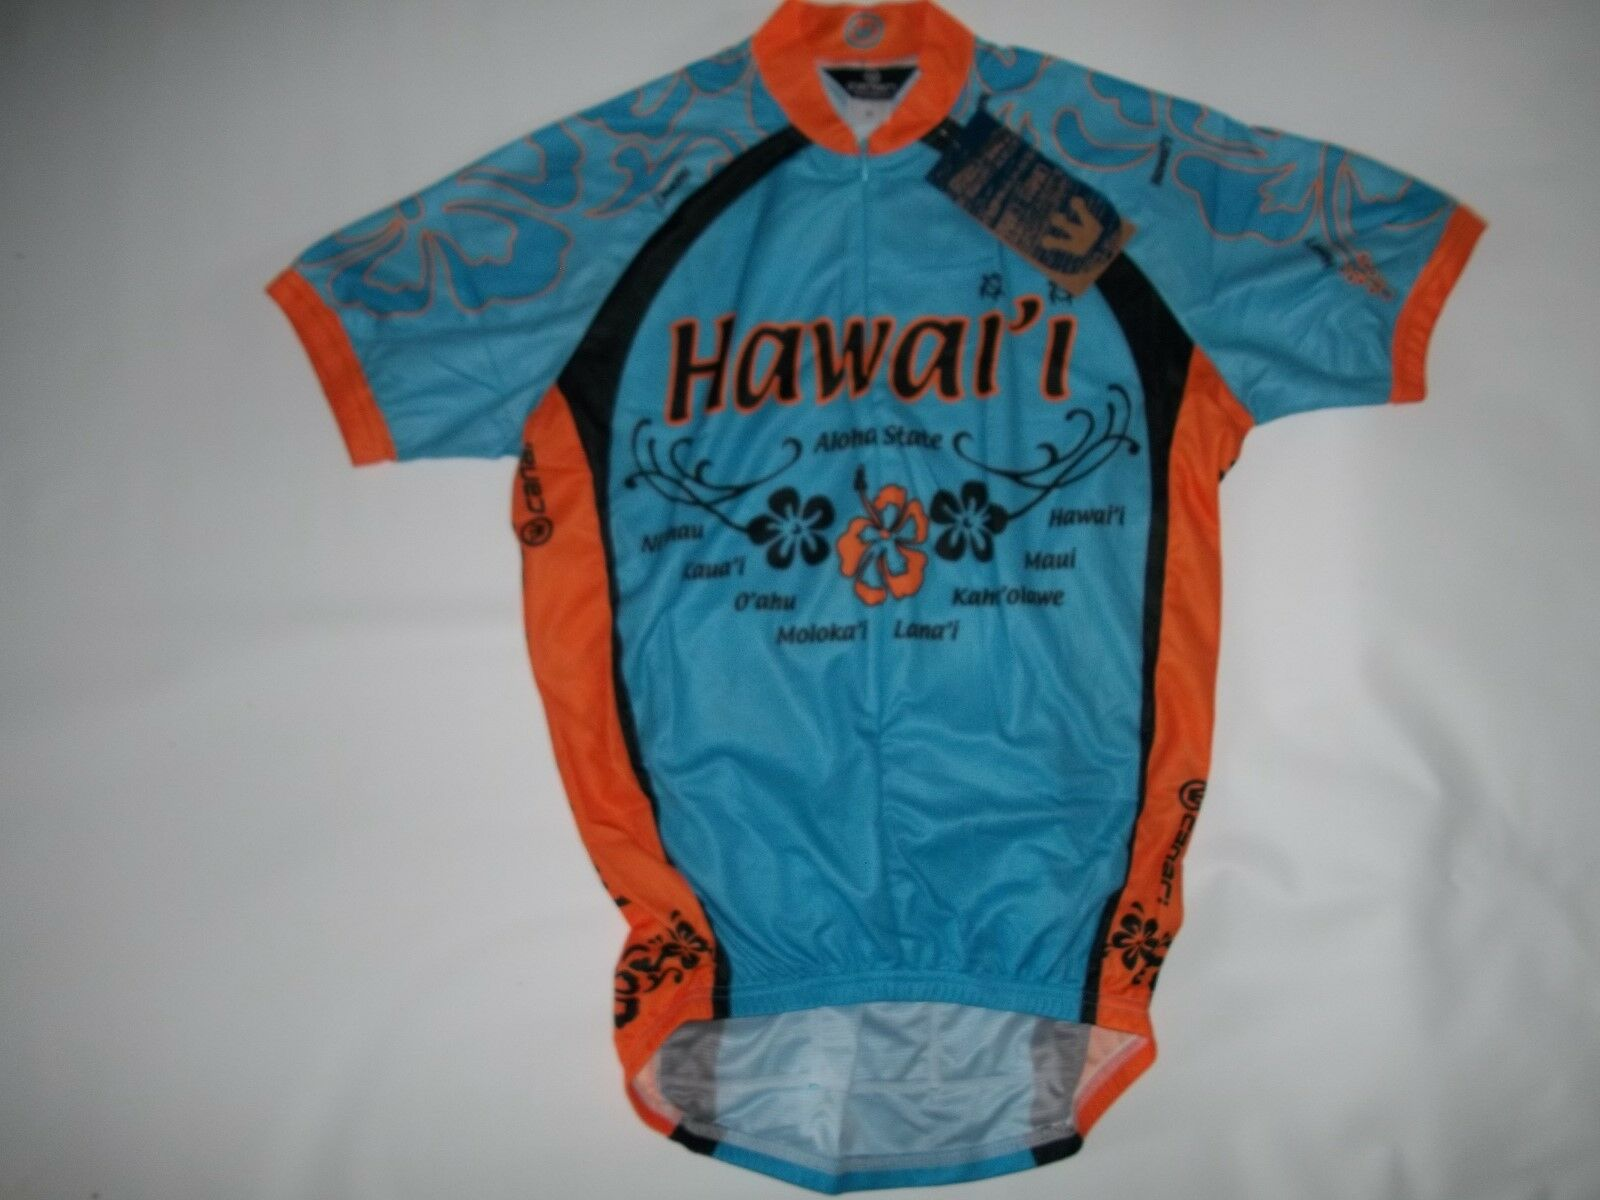 CANARI Cycling HAWAII III Souvenir Short Sleeve Sleeve Short Jersey SHIRT  Herren Größe XS NEW 978655